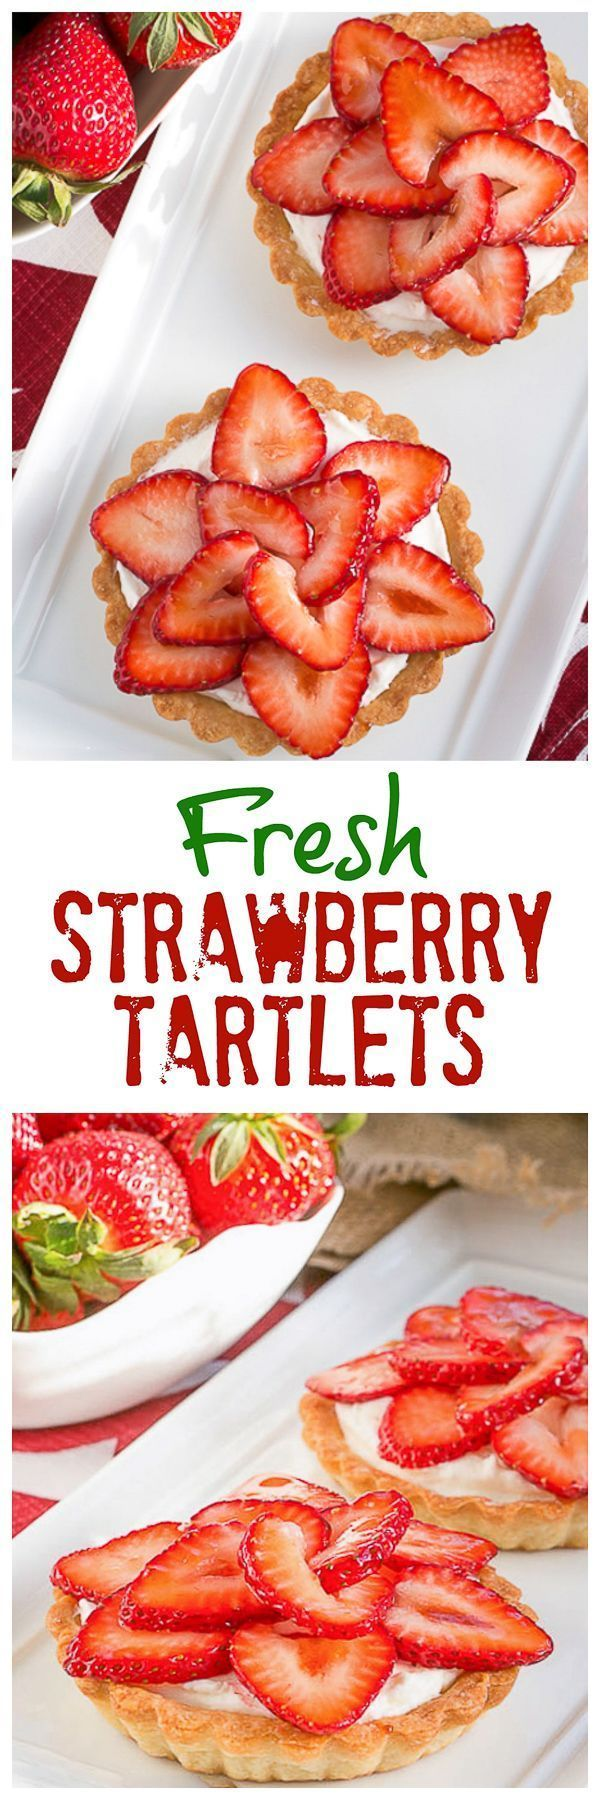 Fresh Strawberry Tartlets | Dreamy tartlets topped with luscious cream cheese filling and topped with berry slices @lizzydo